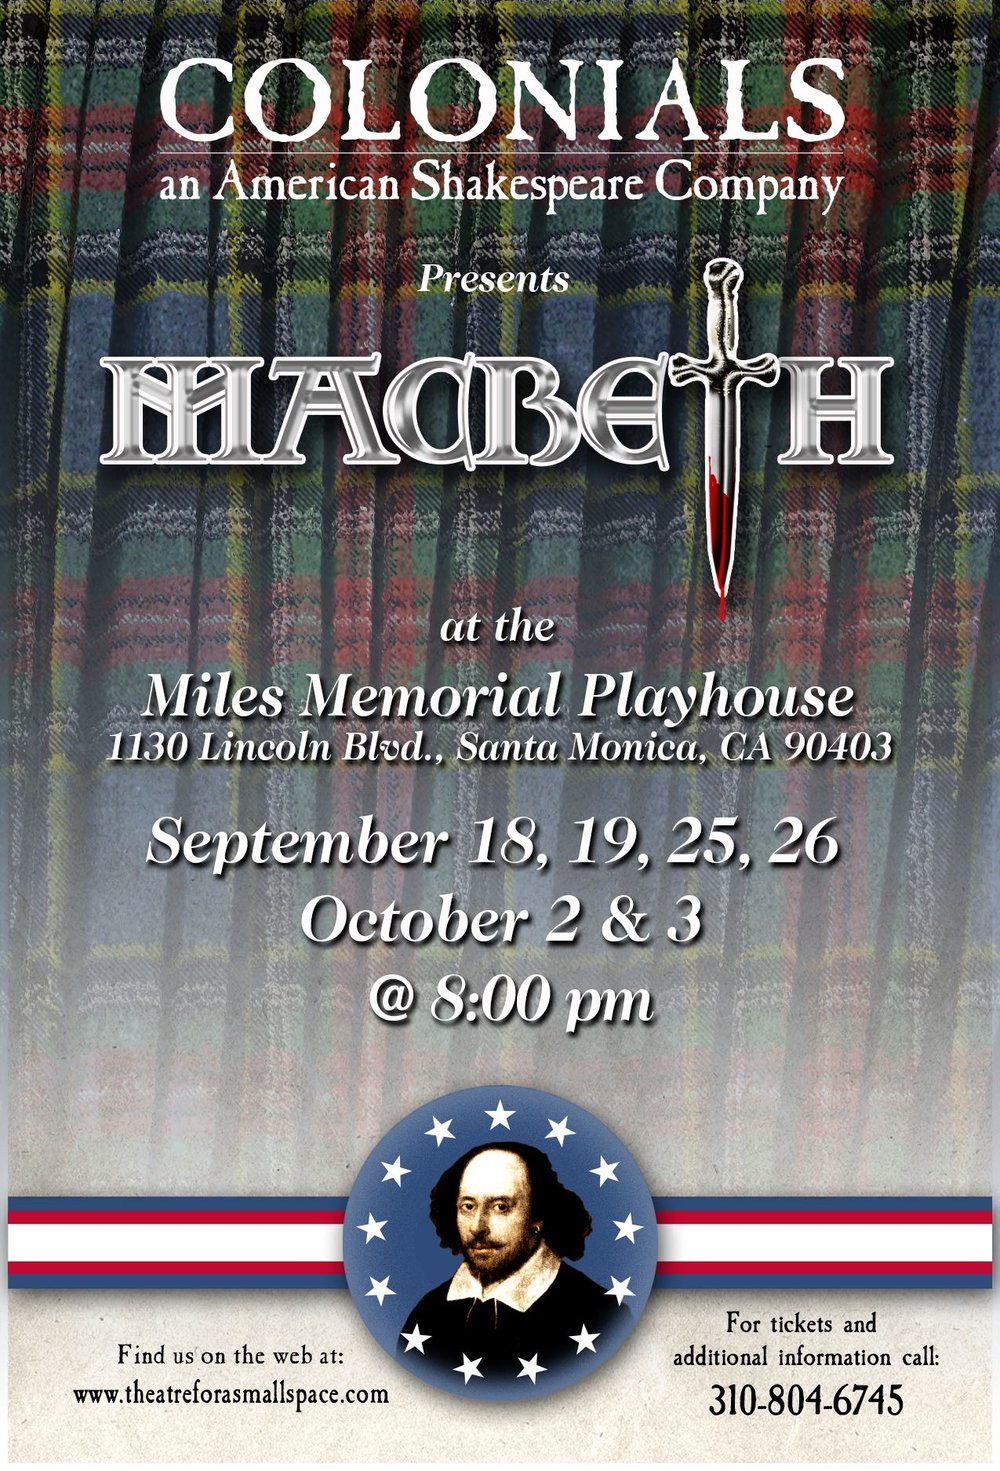 Colonials Macbeth Postcard-1.jpg